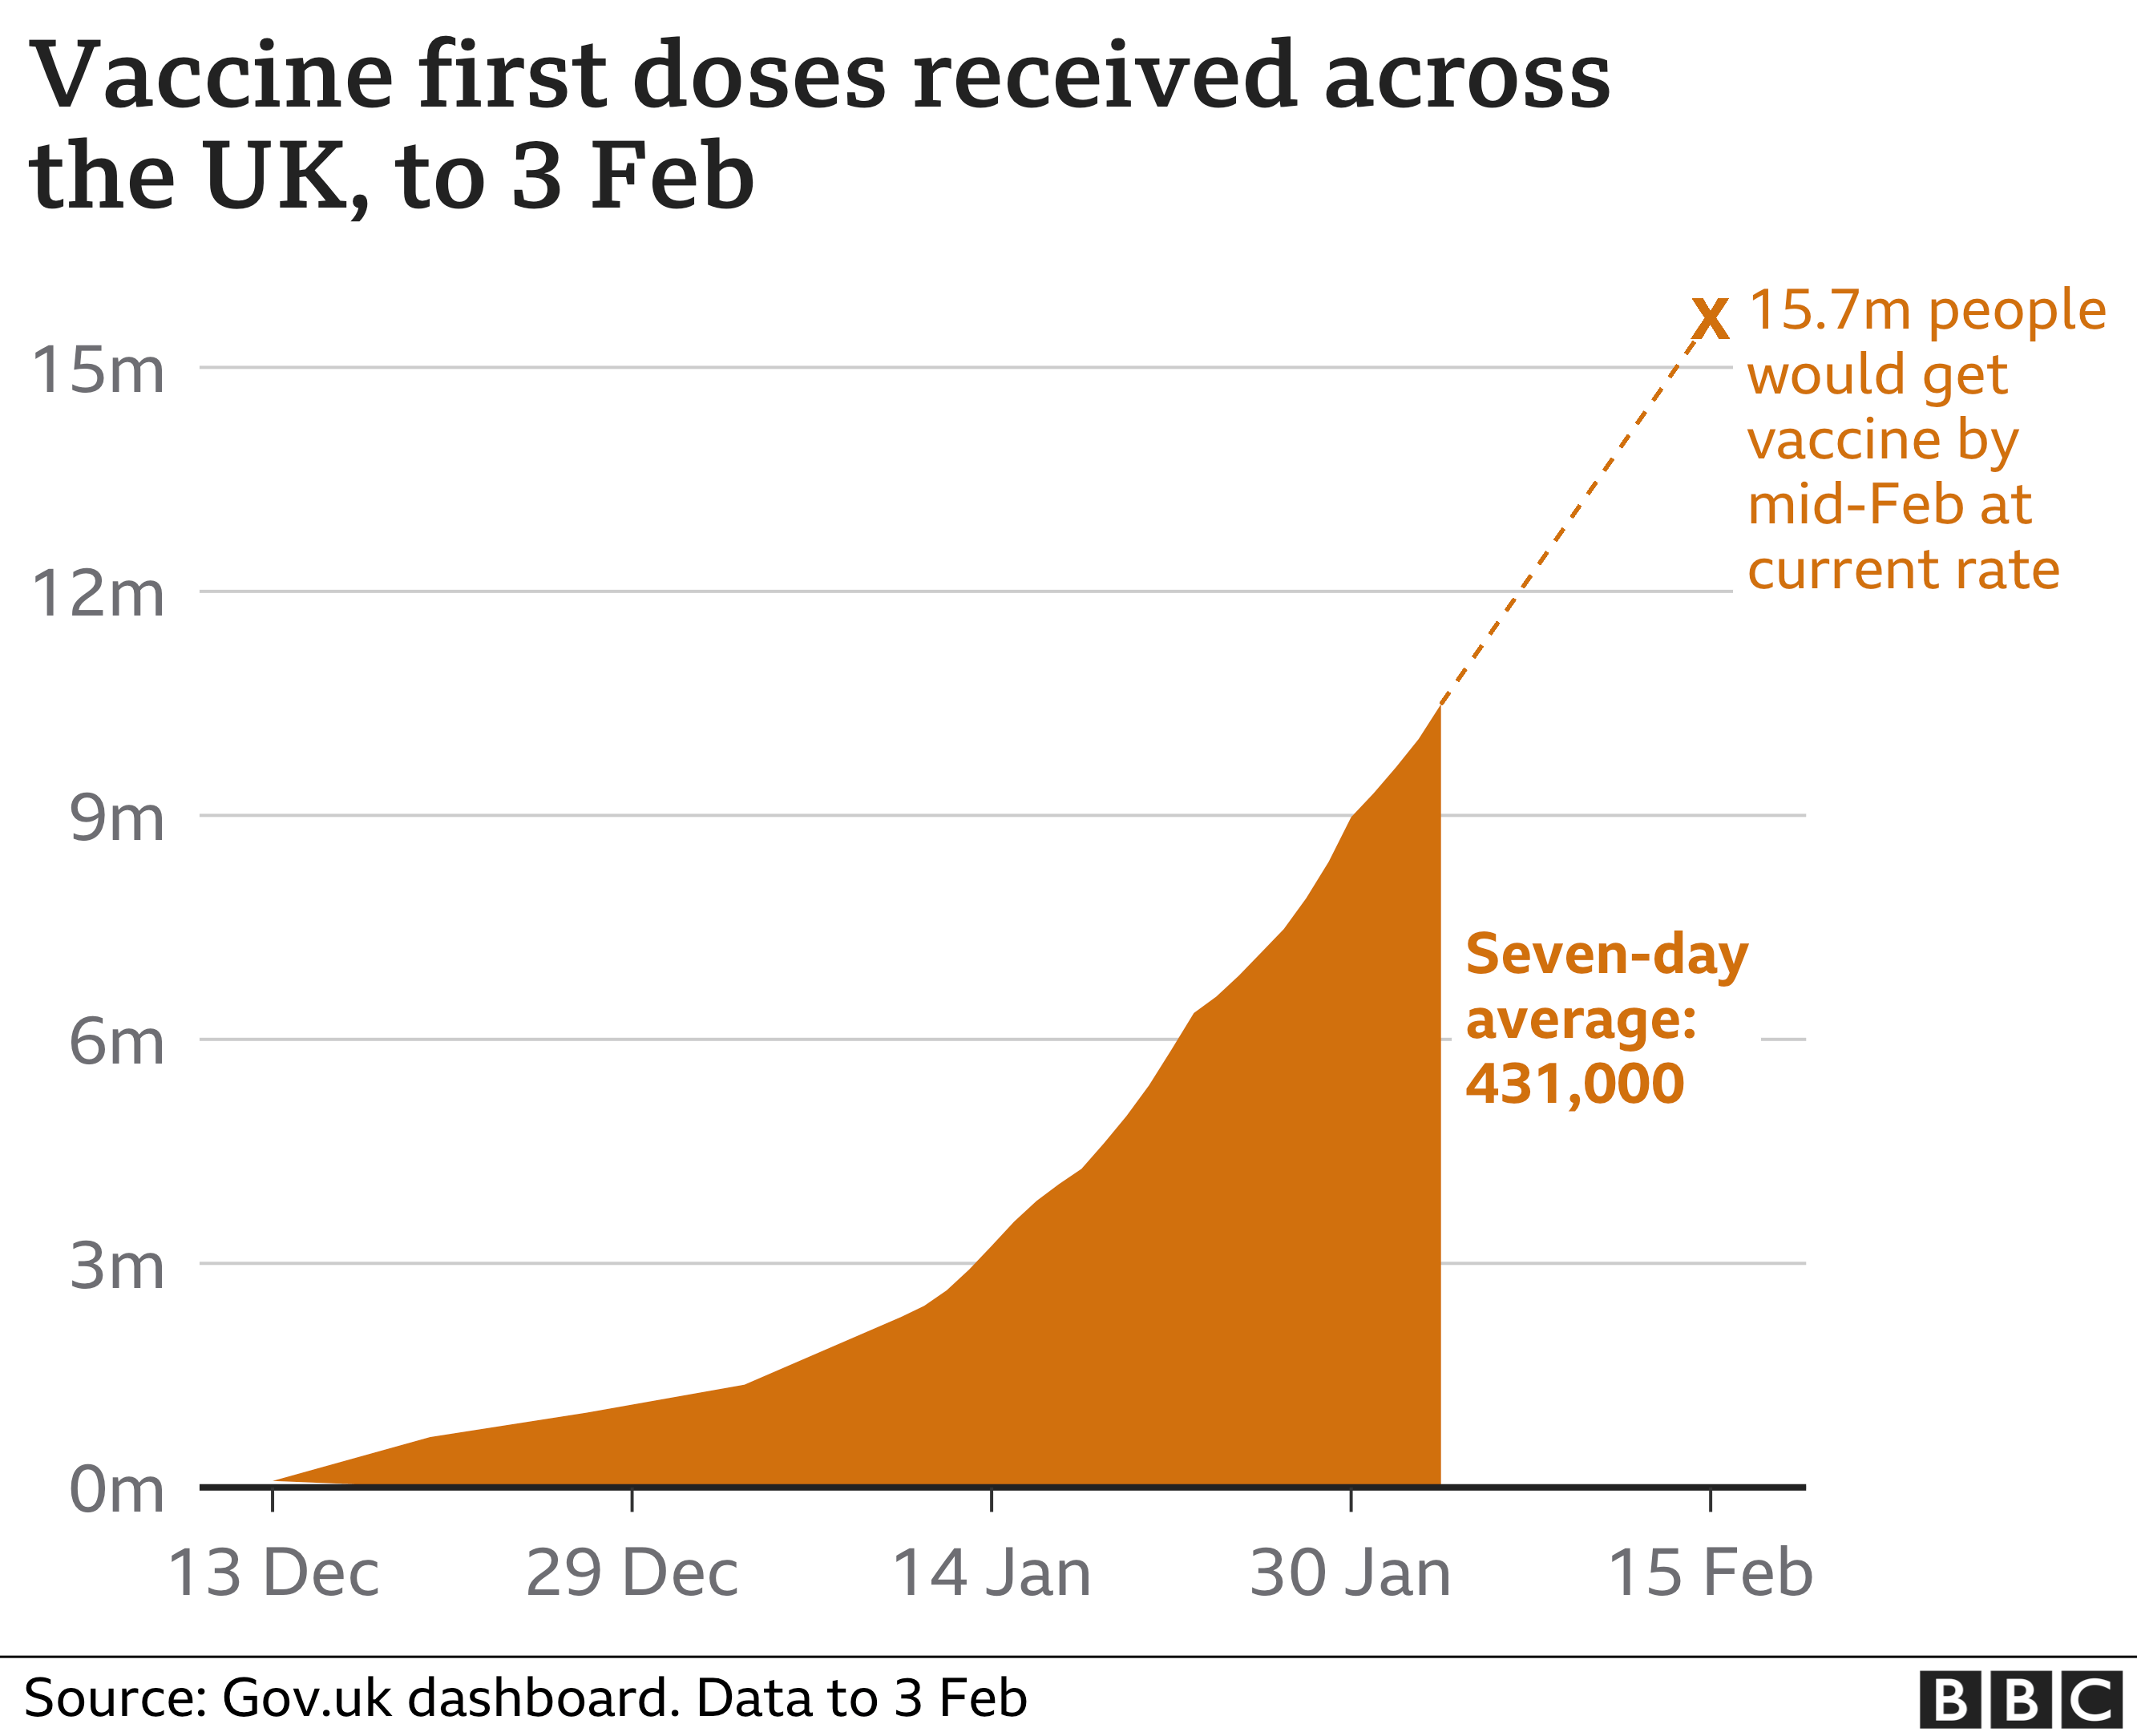 Chart shows vaccination programme on course to reach 15m people by mid Feb. Updated 4 Feb.